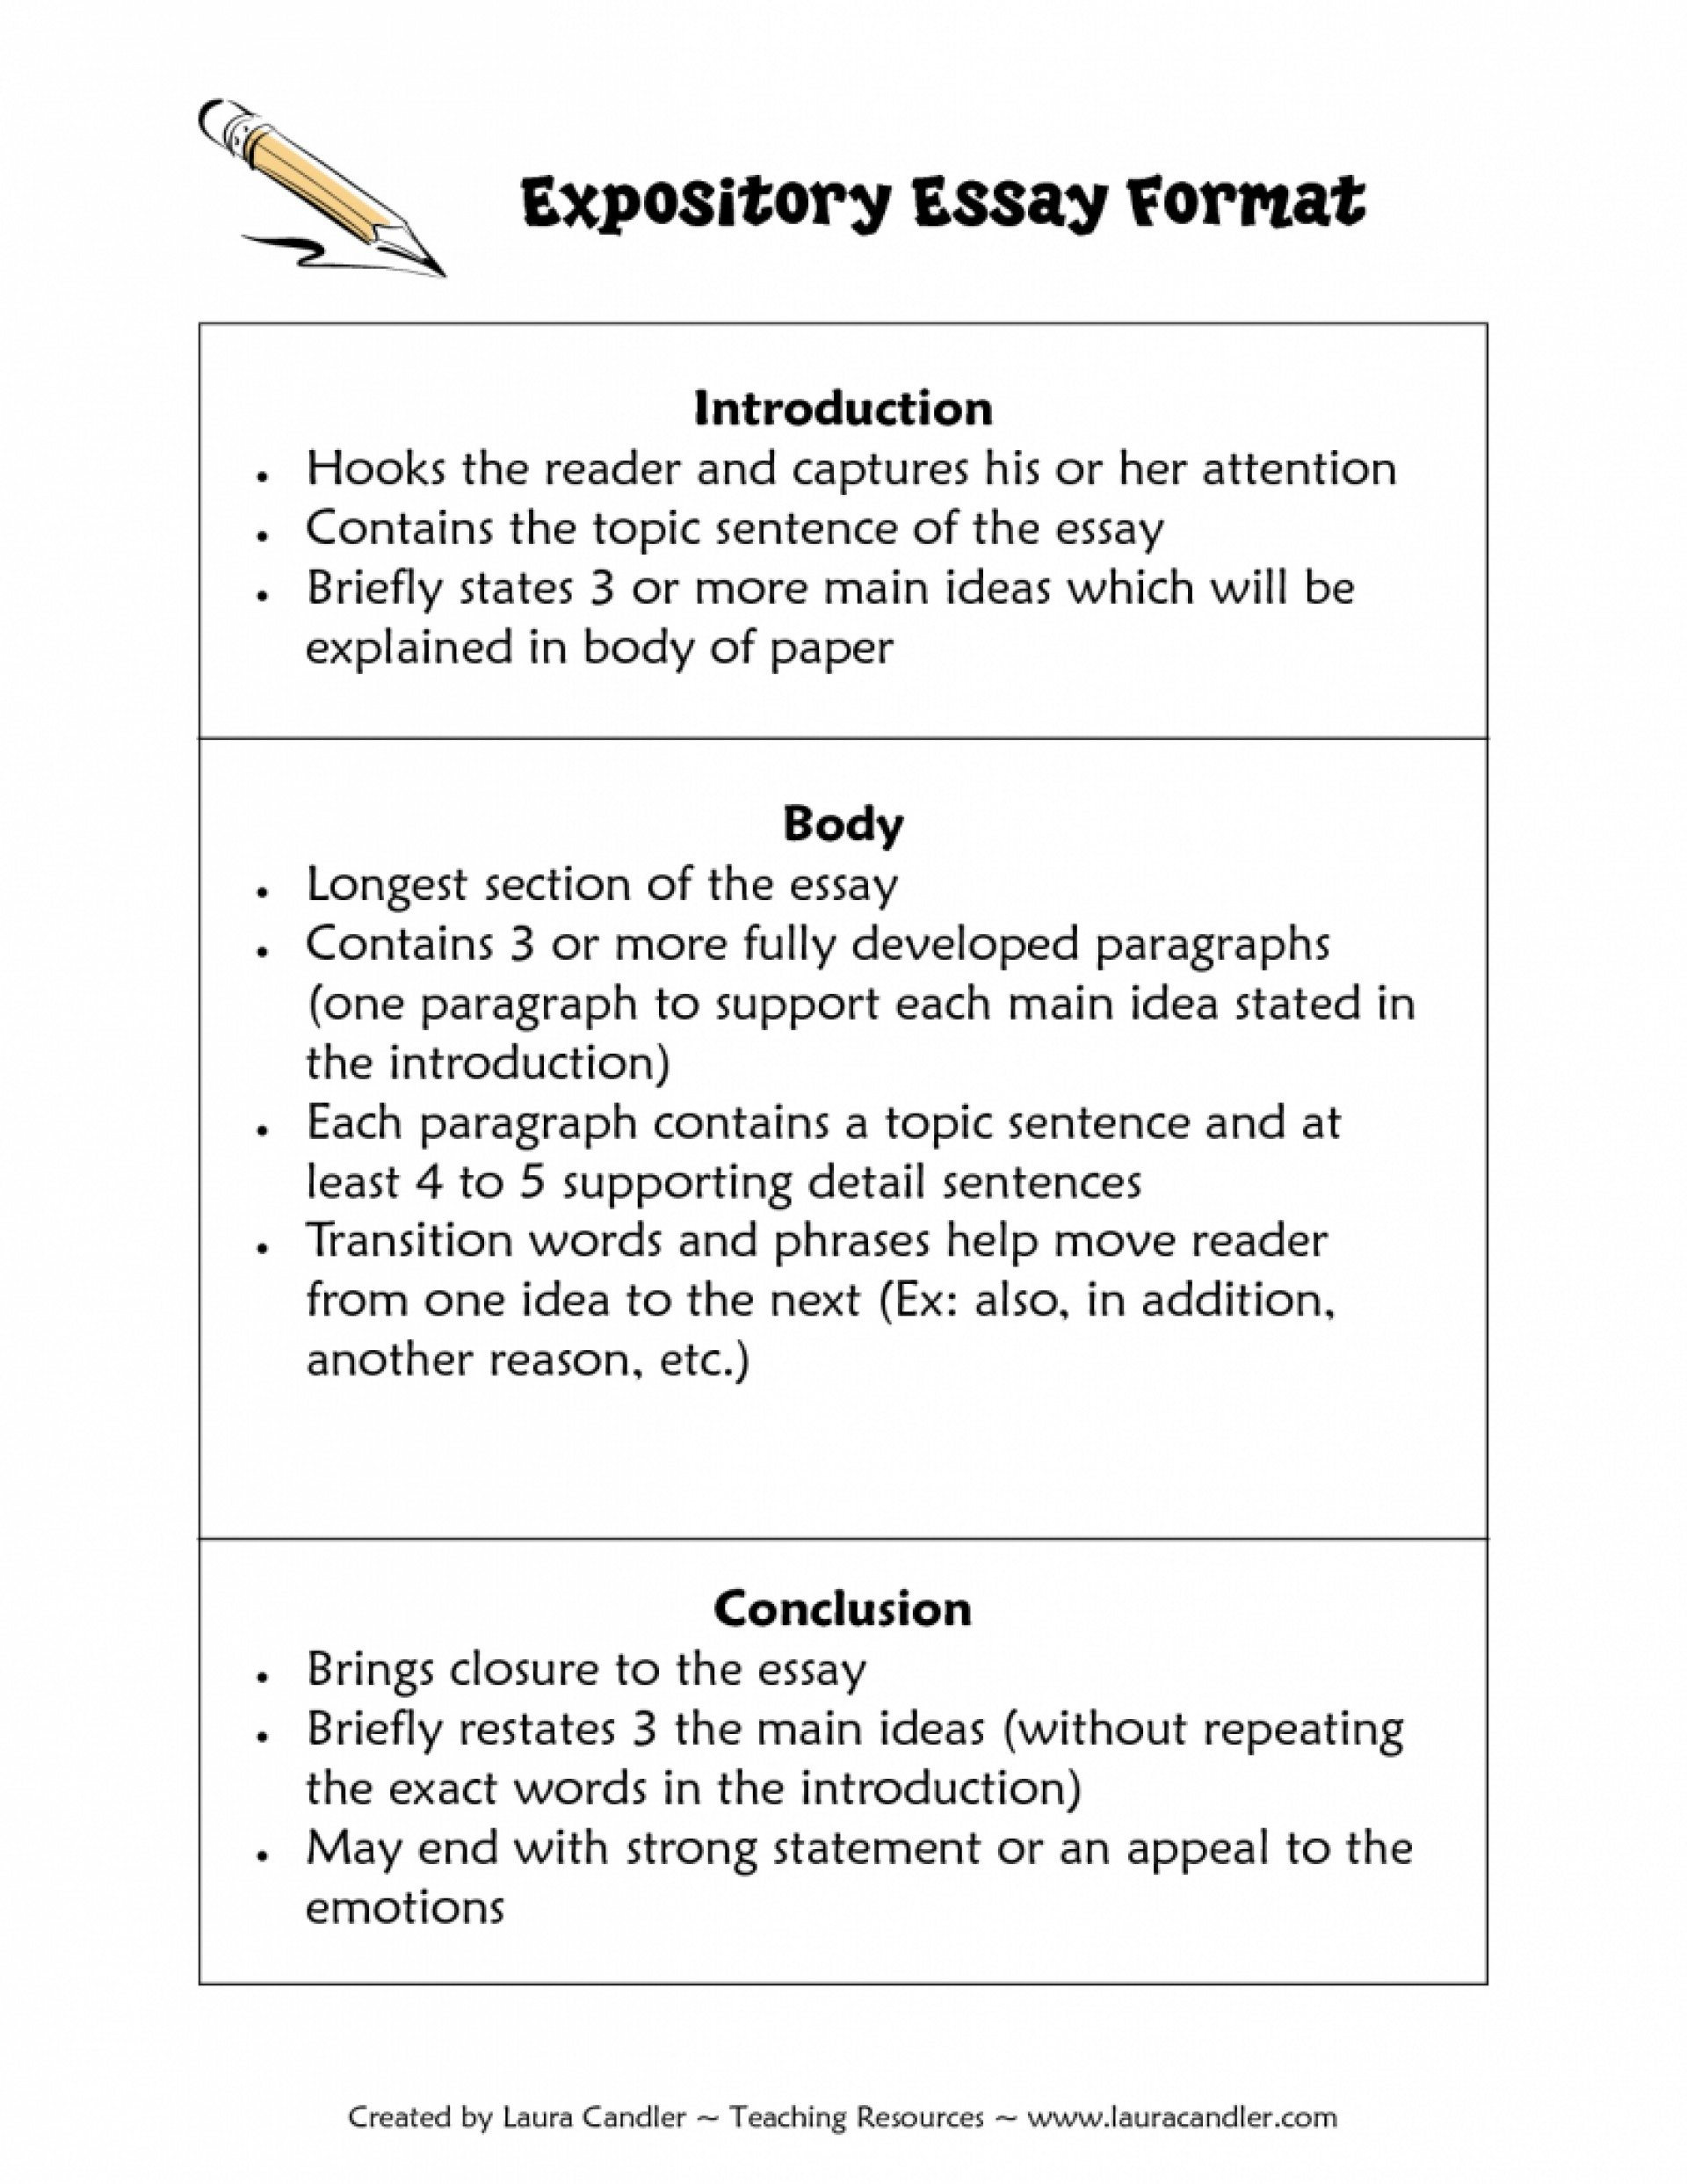 004 Essay Example How To Write An Remarkable Expository 3rd Grade 5th Pdf 1920